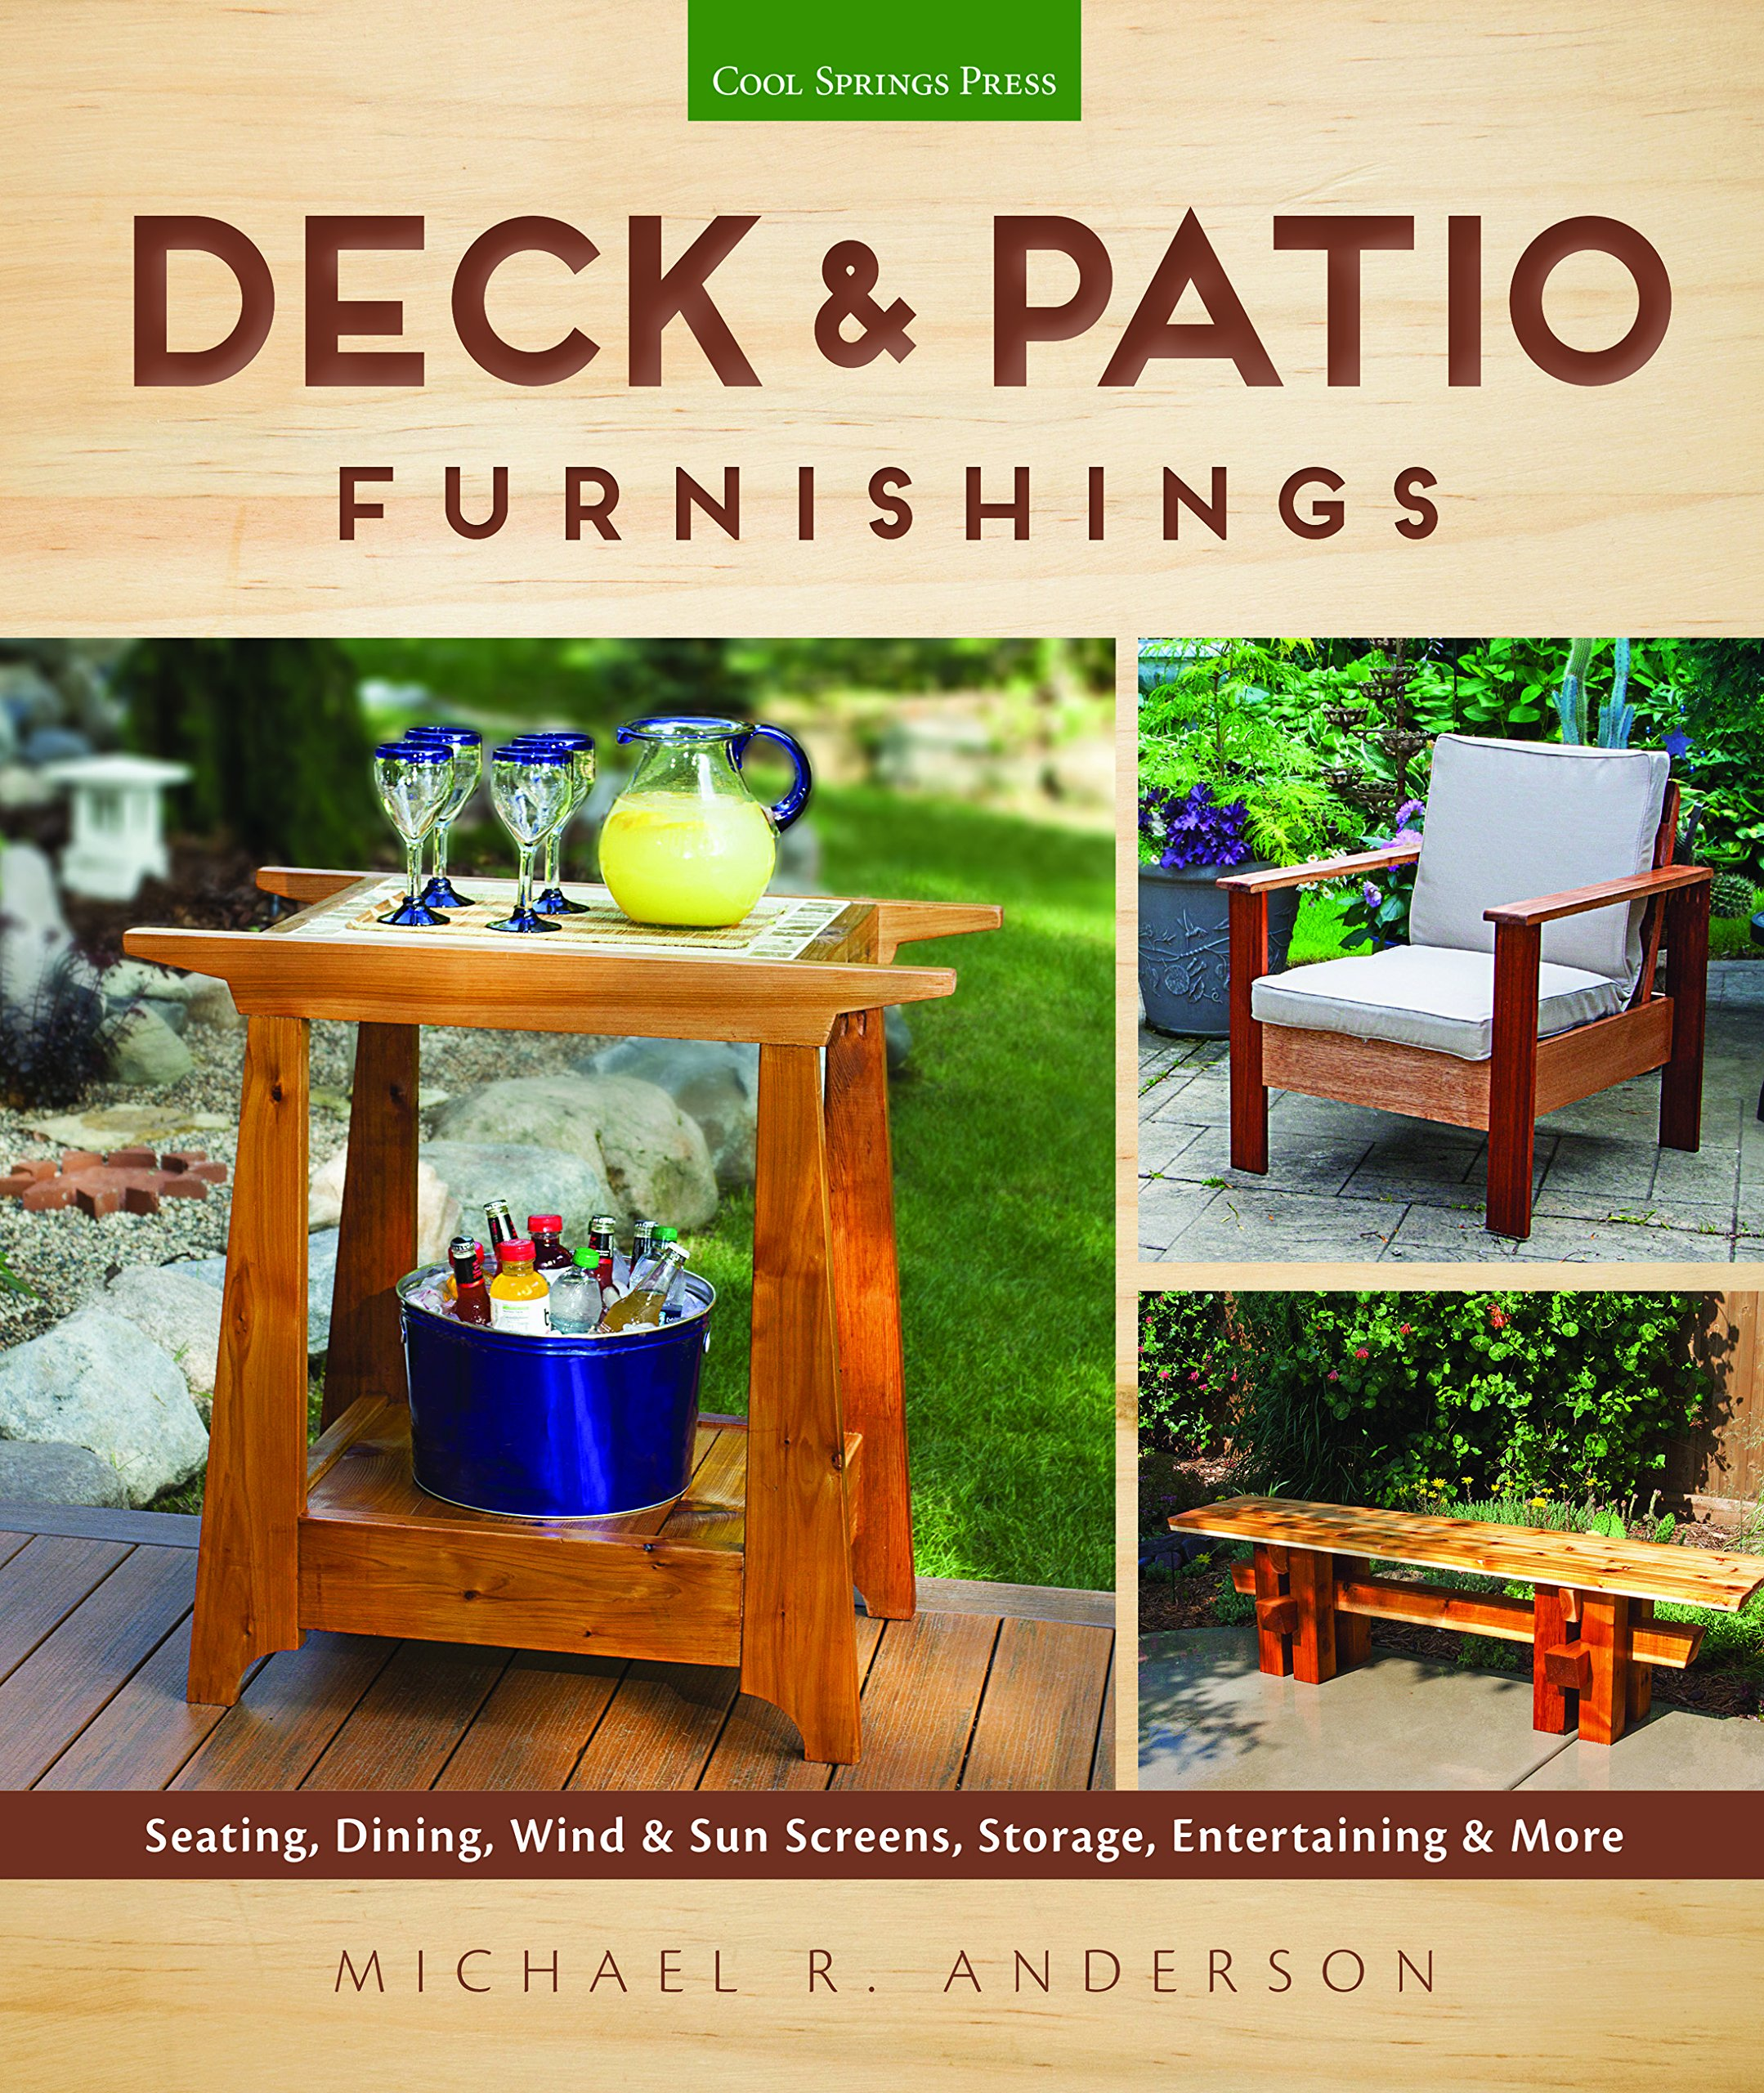 Deck & Patio Furnishings: Seating, Dining, Wind & Sun Screens, Storage, Entertaining & More by Cool Springs Press (Image #1)